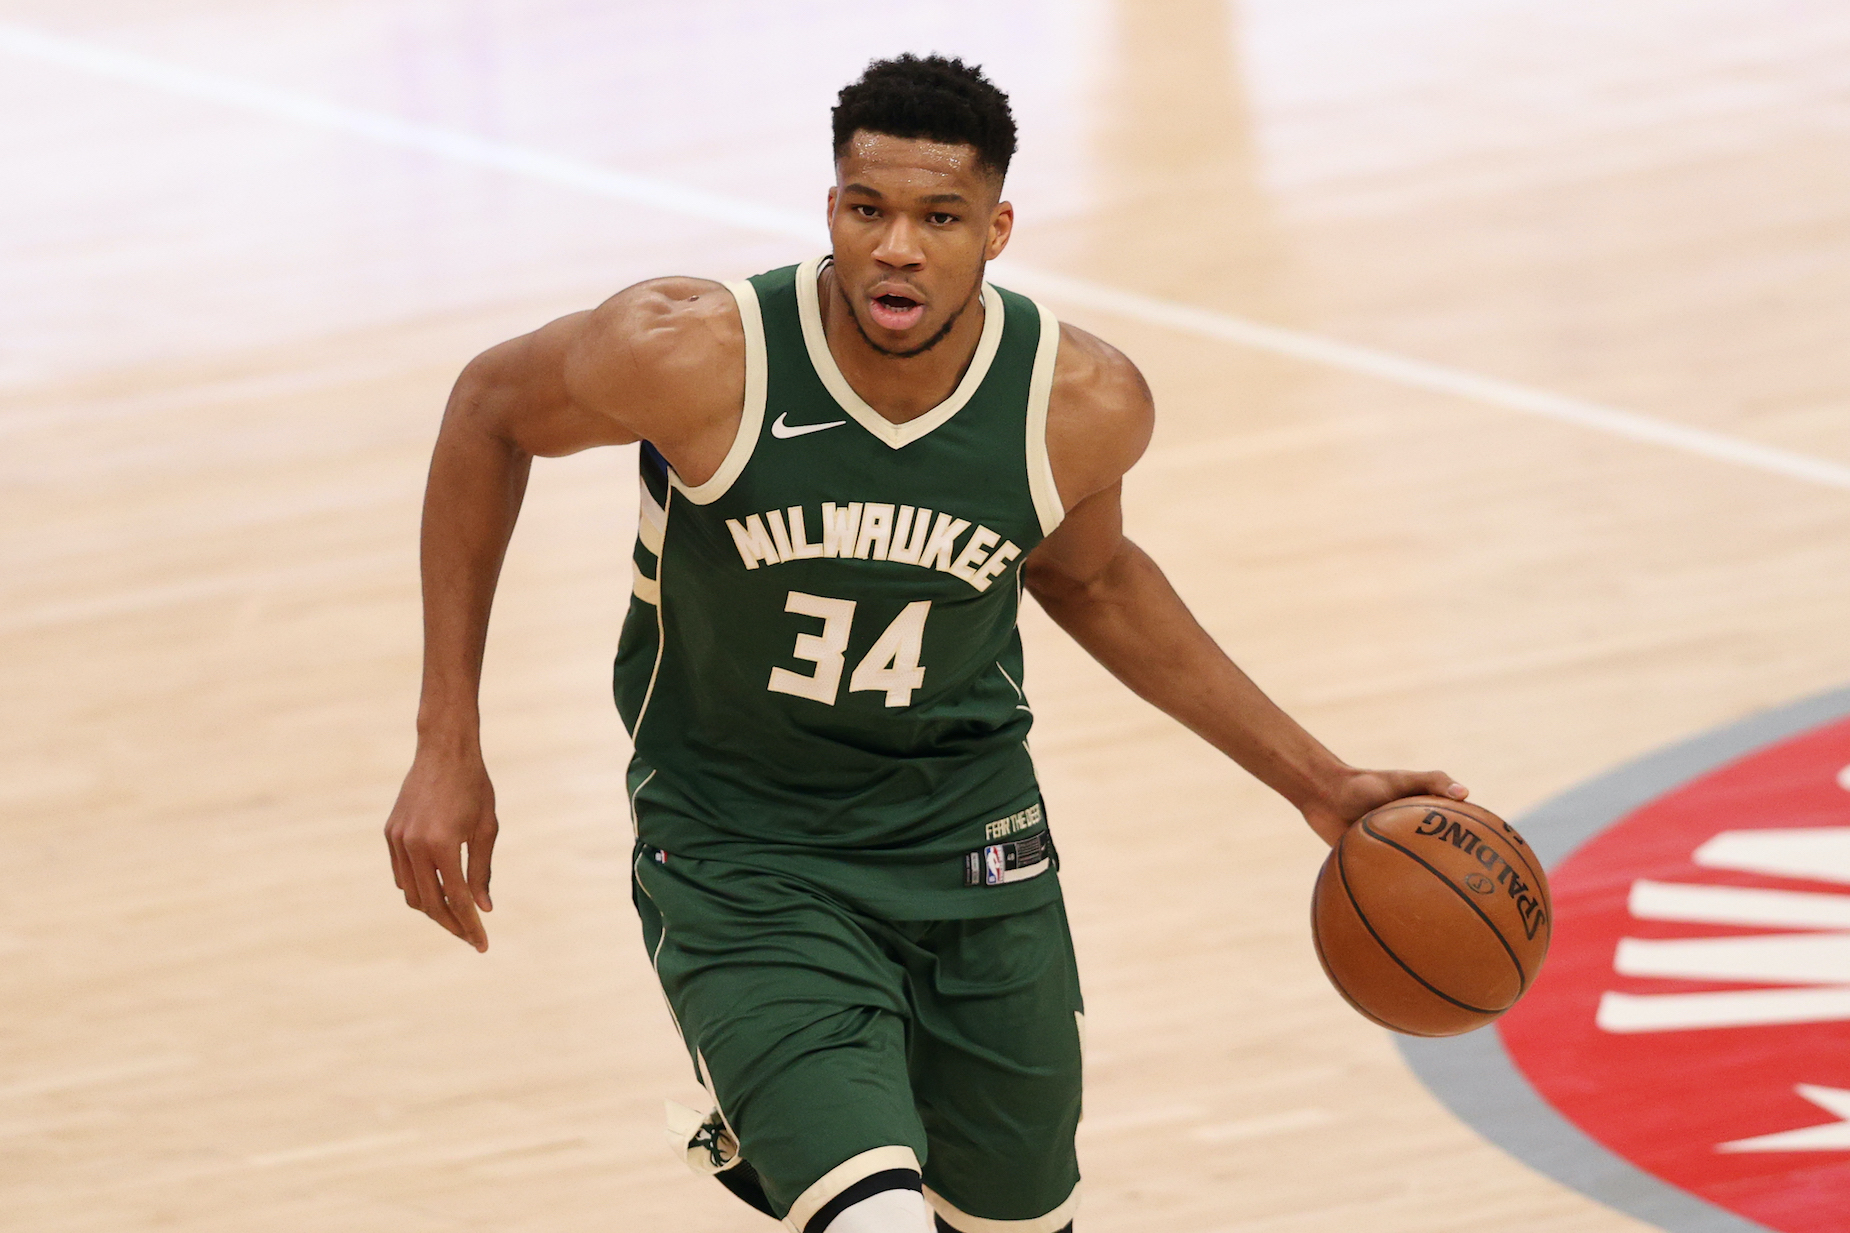 Giannis Antetokounmpo Is Worth $70 Million, but He Started His Basketball Career Sleeping in the Gym